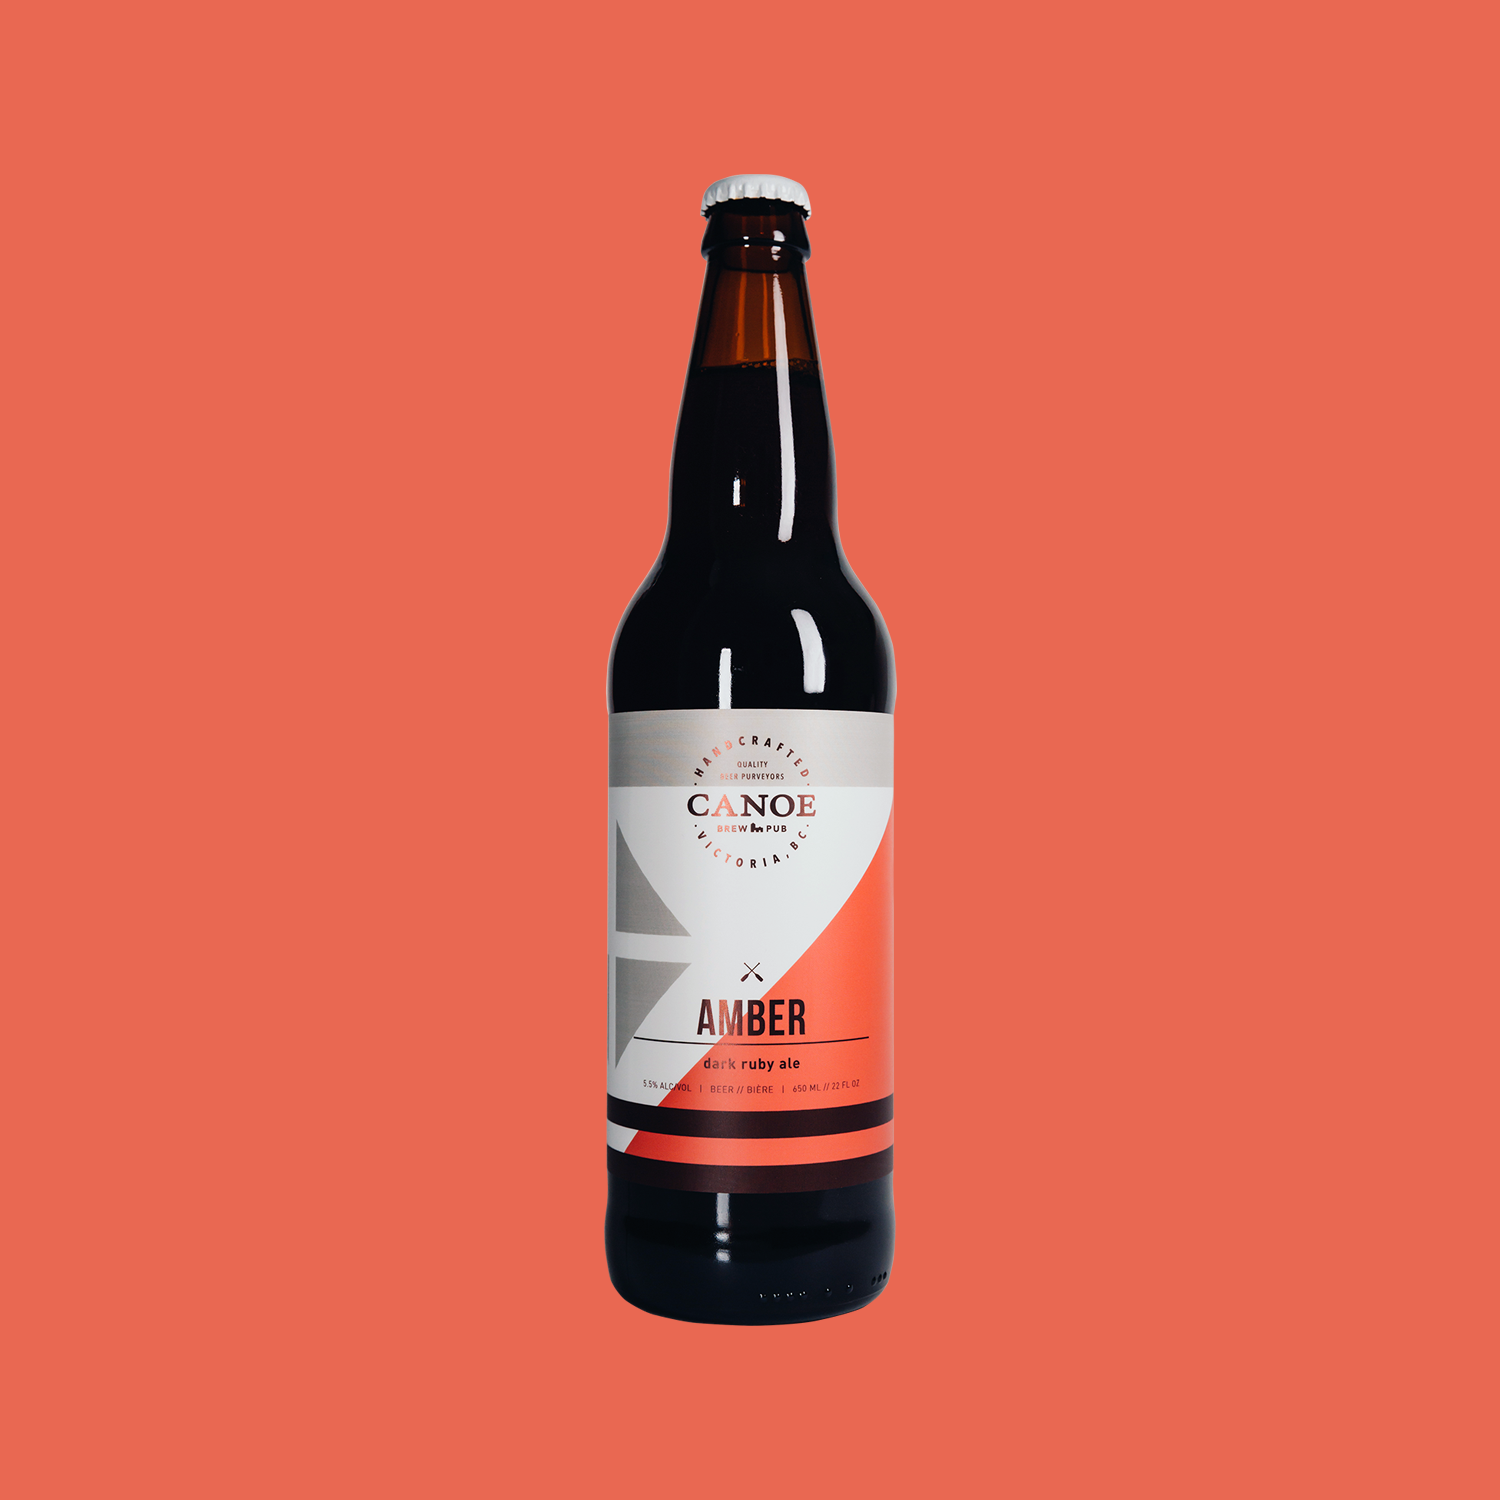 Amber - A dark ruby ale.A malty, mellow beer with a restrained hop backbone. Sessionable, easy-drinking ale that merges stylistic qualities of the traditional English 'ESB' with new-world American Ale flavours. Dark & malty.ALC: 5.5%IBU: 18 (low bitterness/hoppiness)Malt: High